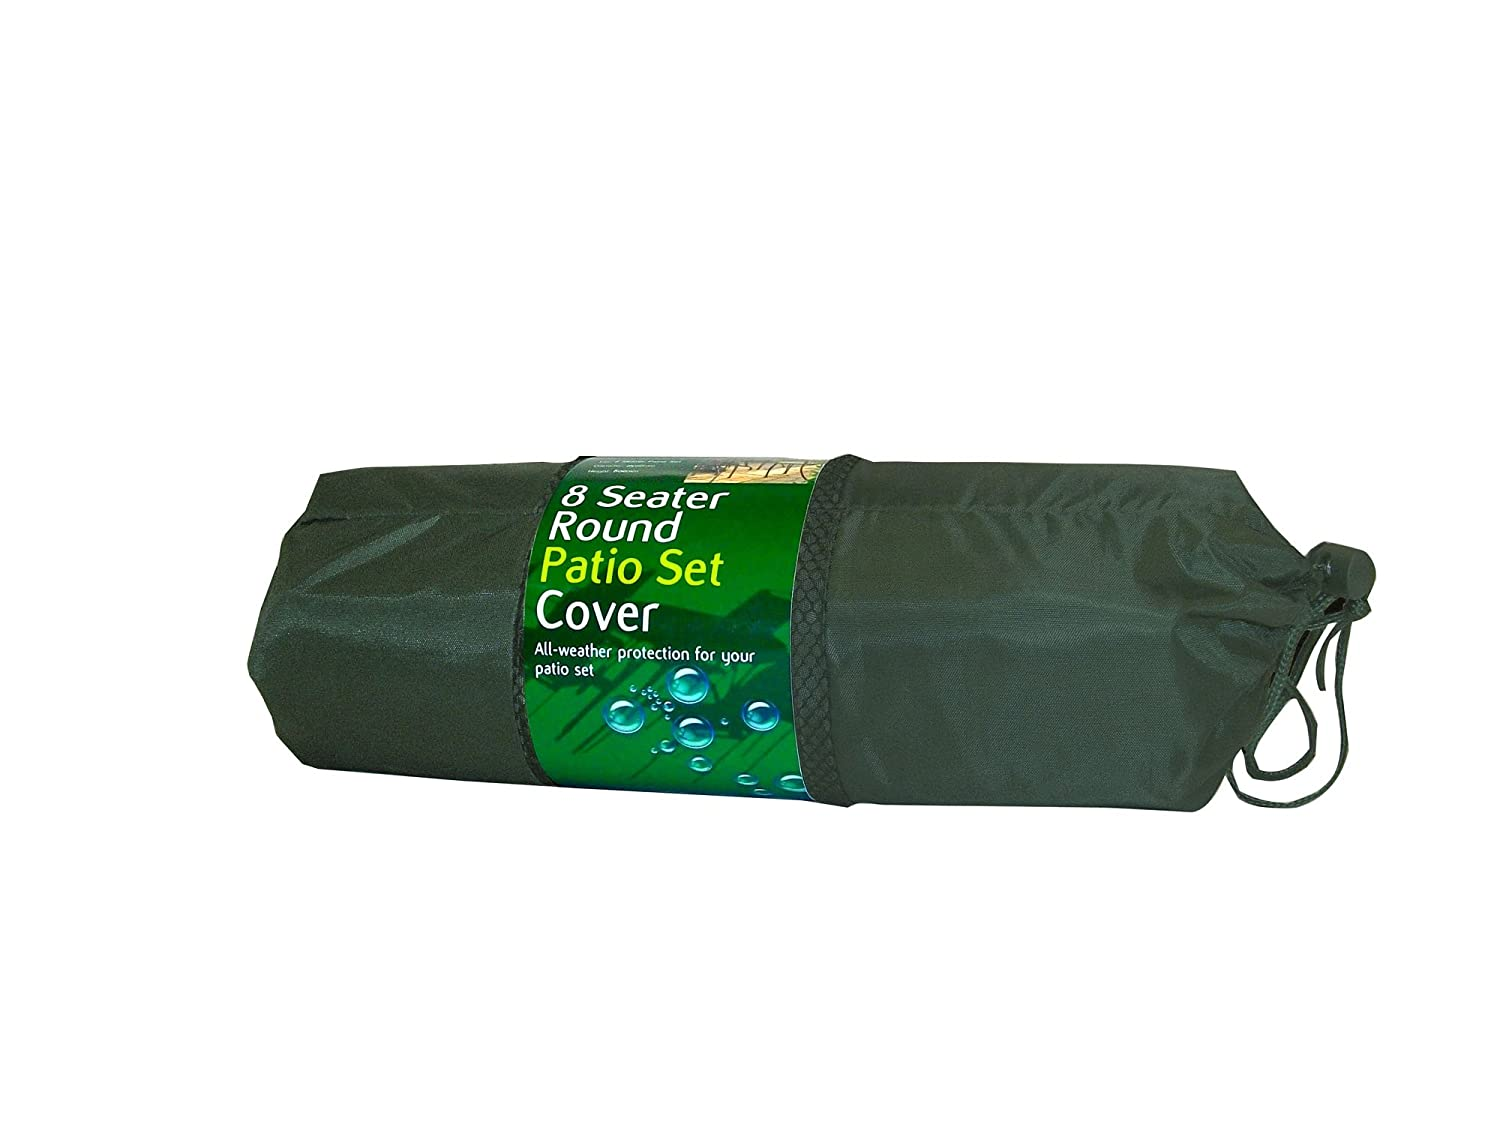 Camelot Round Set Four Seater Cover WEP0104 Protection Tarpaulin Protector